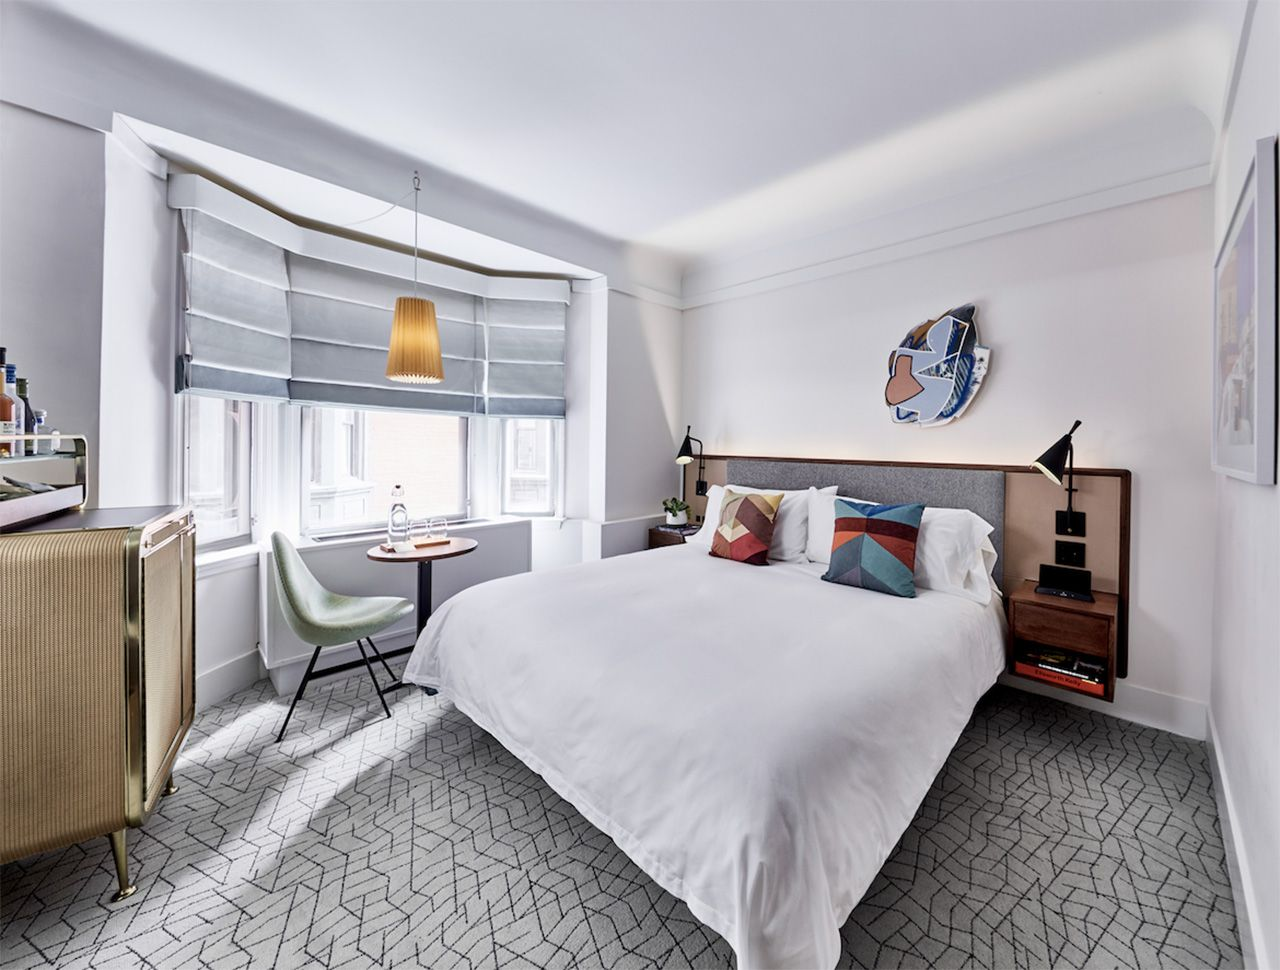 The James Hotel New York Nomad review to stay sane